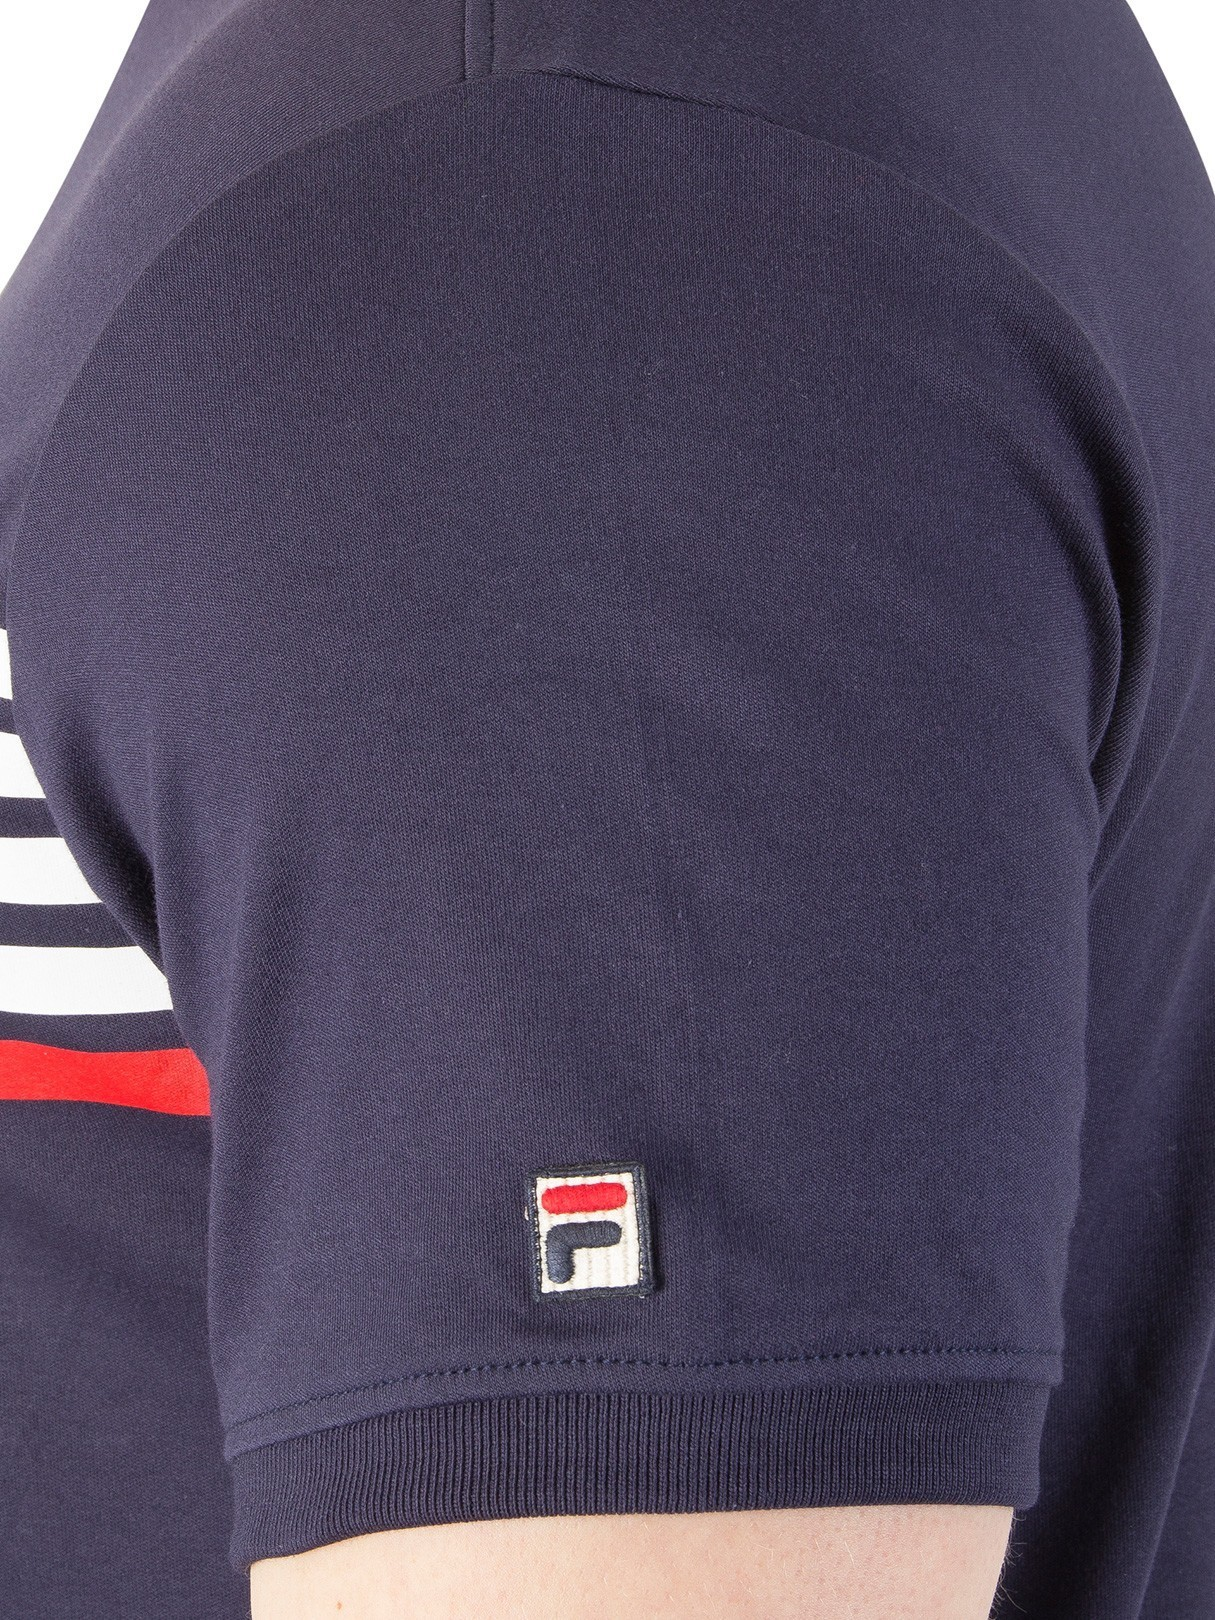 203a09b6149a Fila Vintage Peacoat Bruno 2 Panelled T-Shirt | Standout